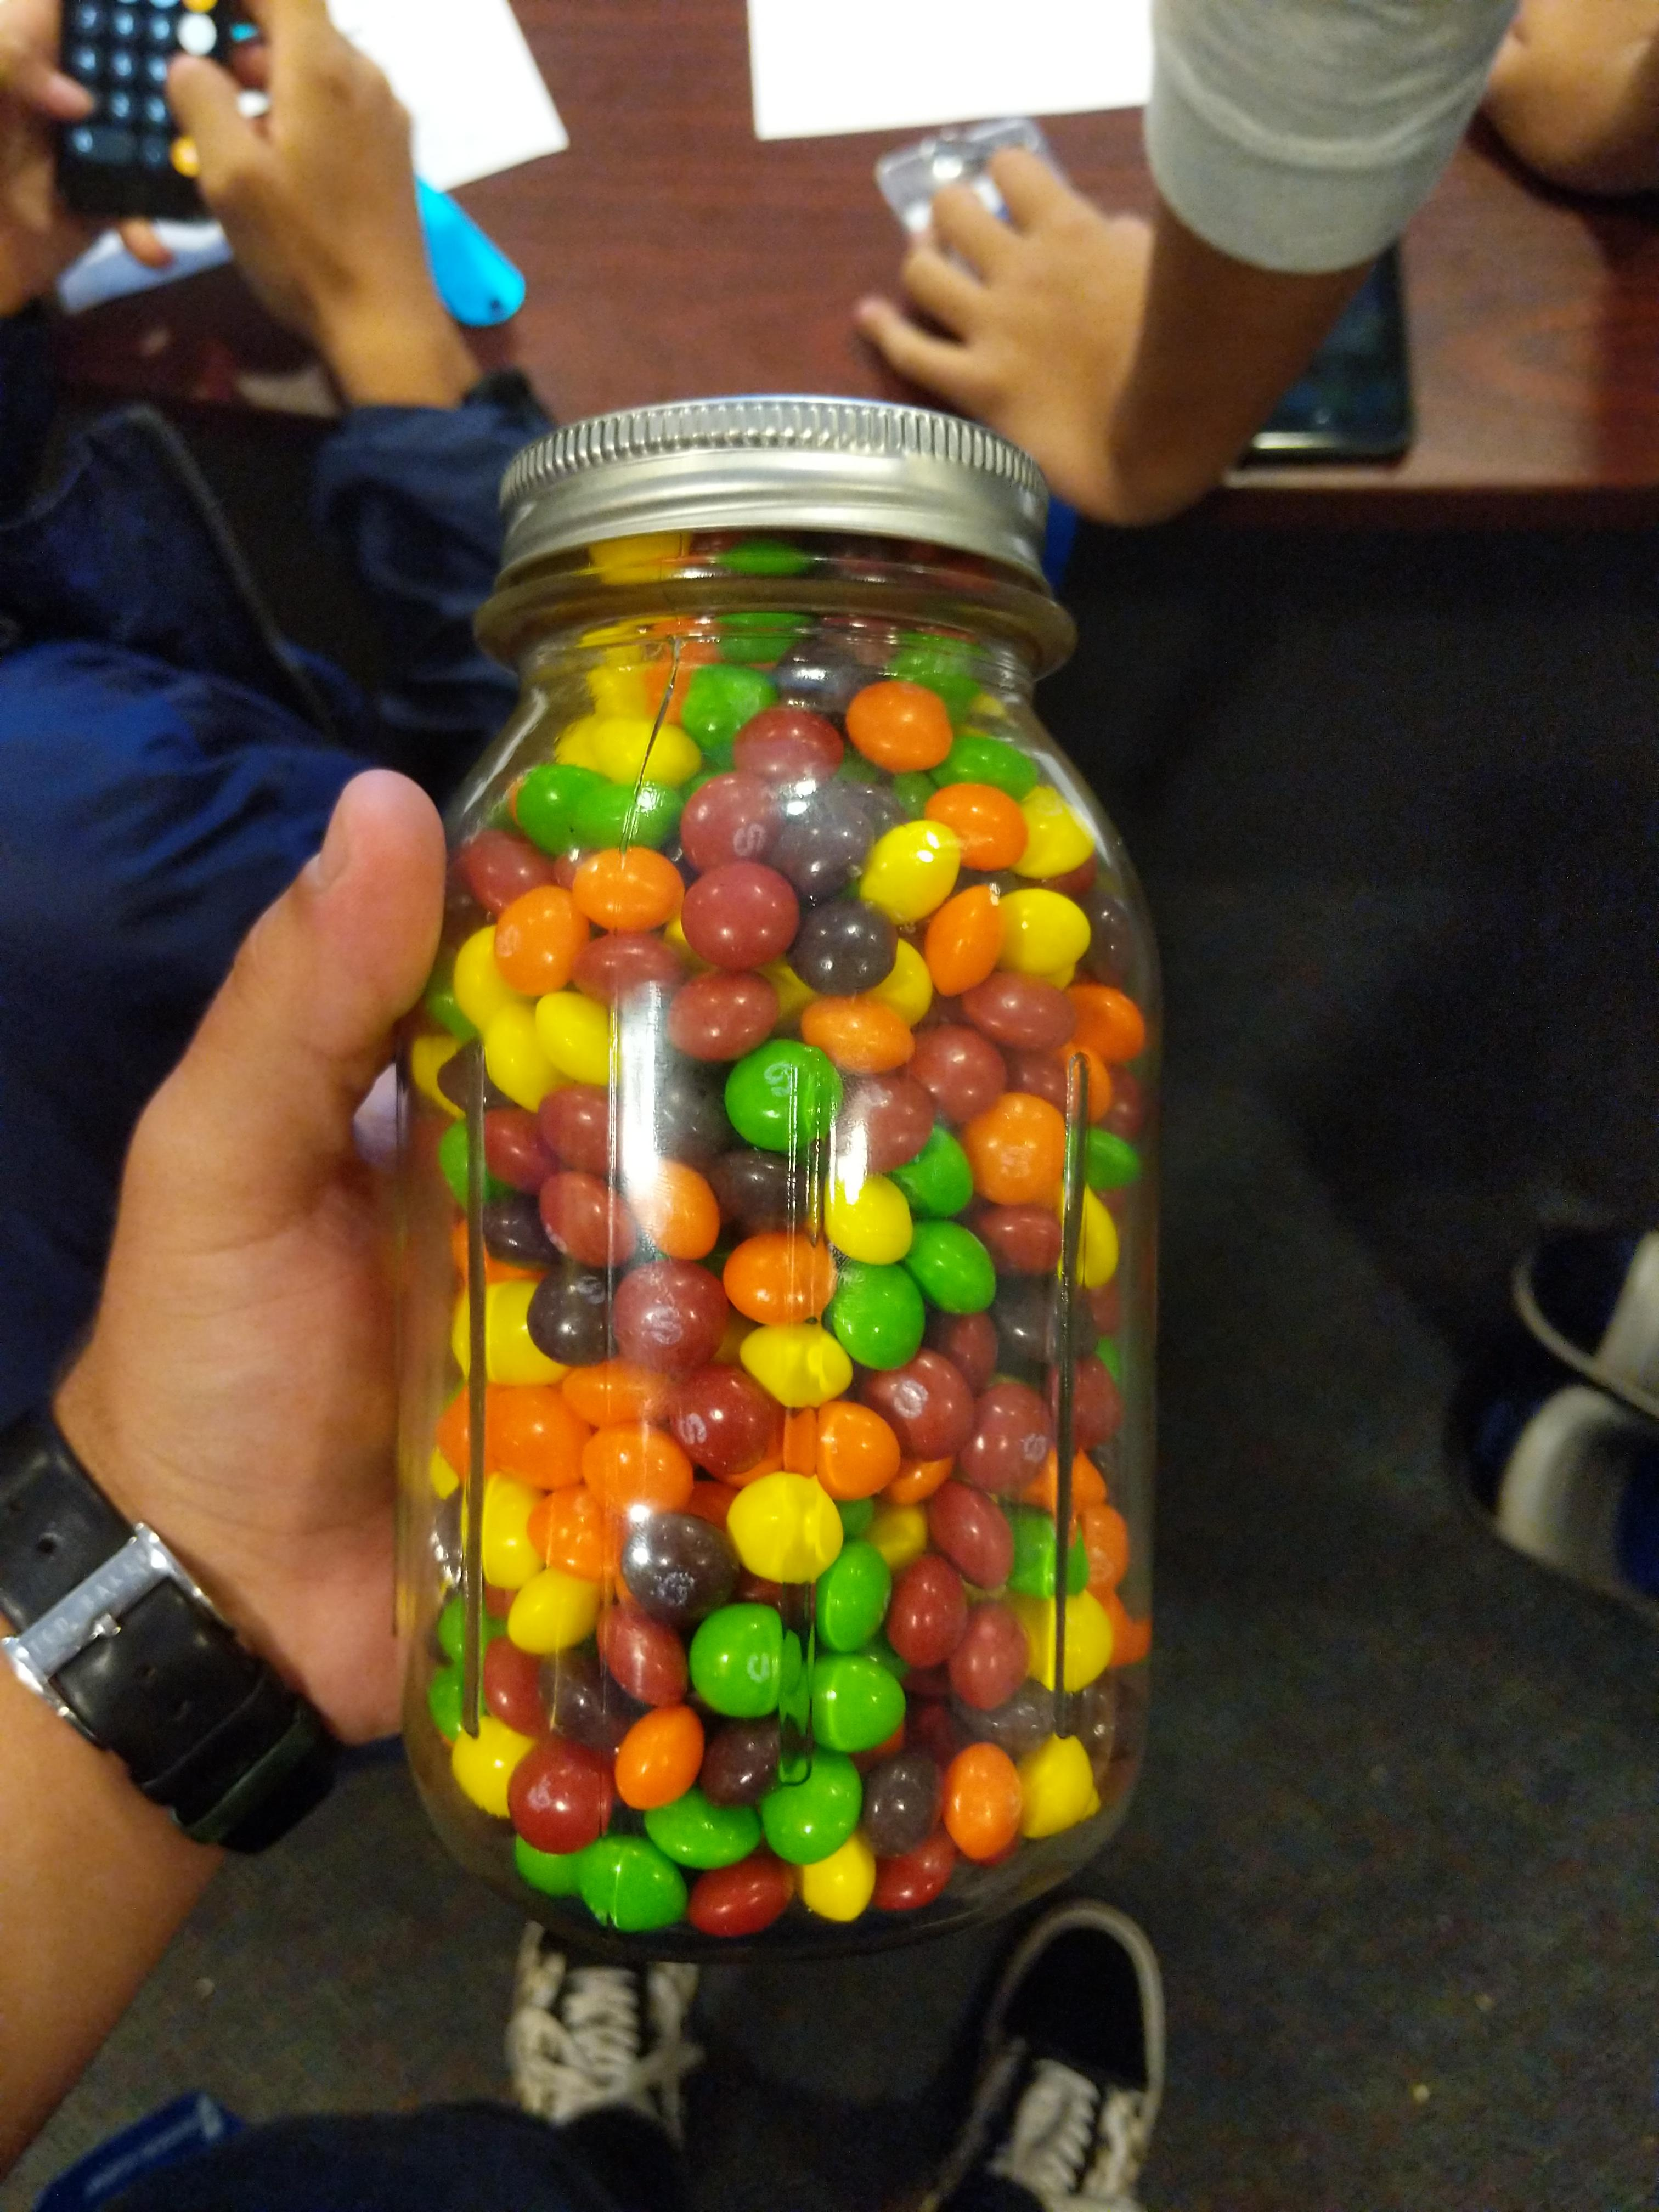 How Many Skittles Can Fit In A 32 Oz Jar : skittles, Skittles, FitnessRetro